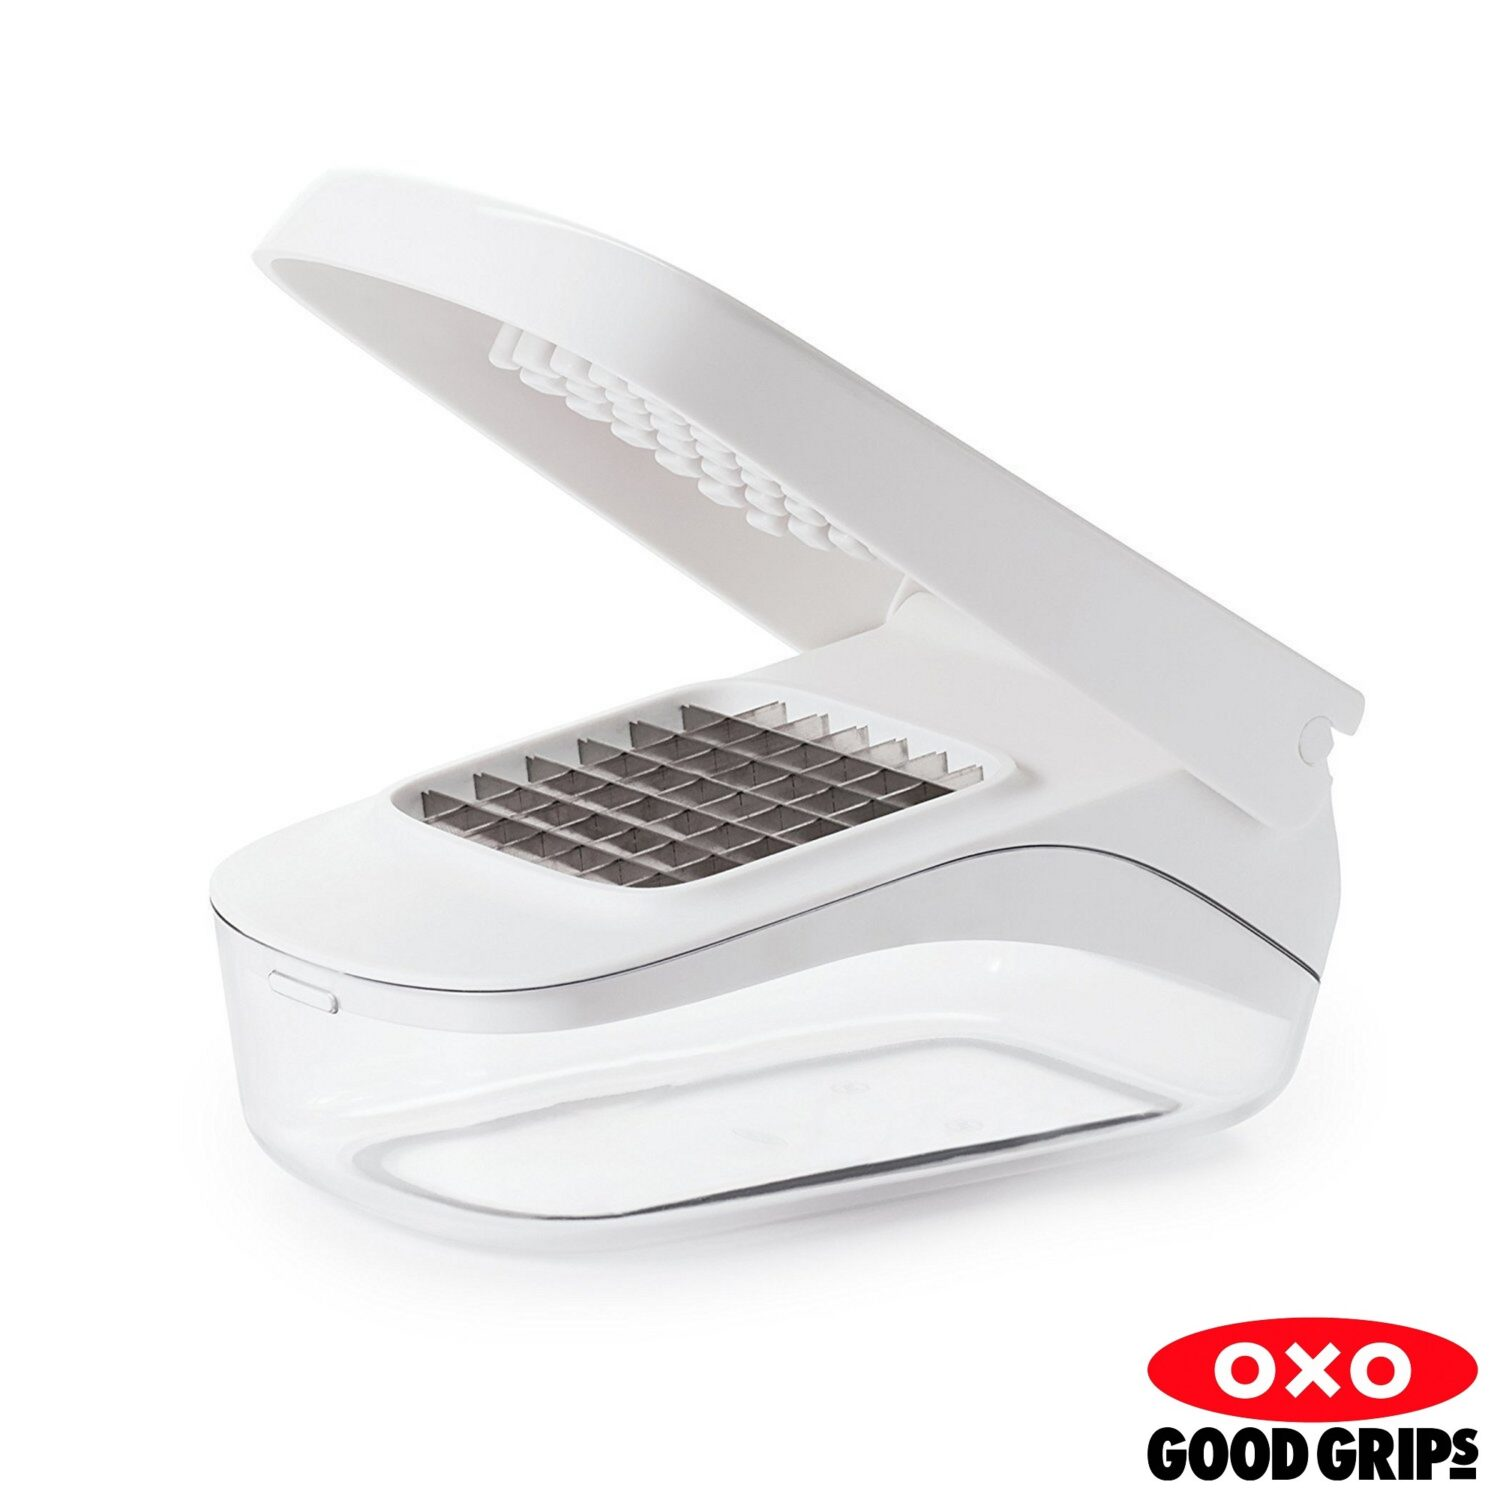 Picador de Vegetais com Dispenser Oxo 590ml